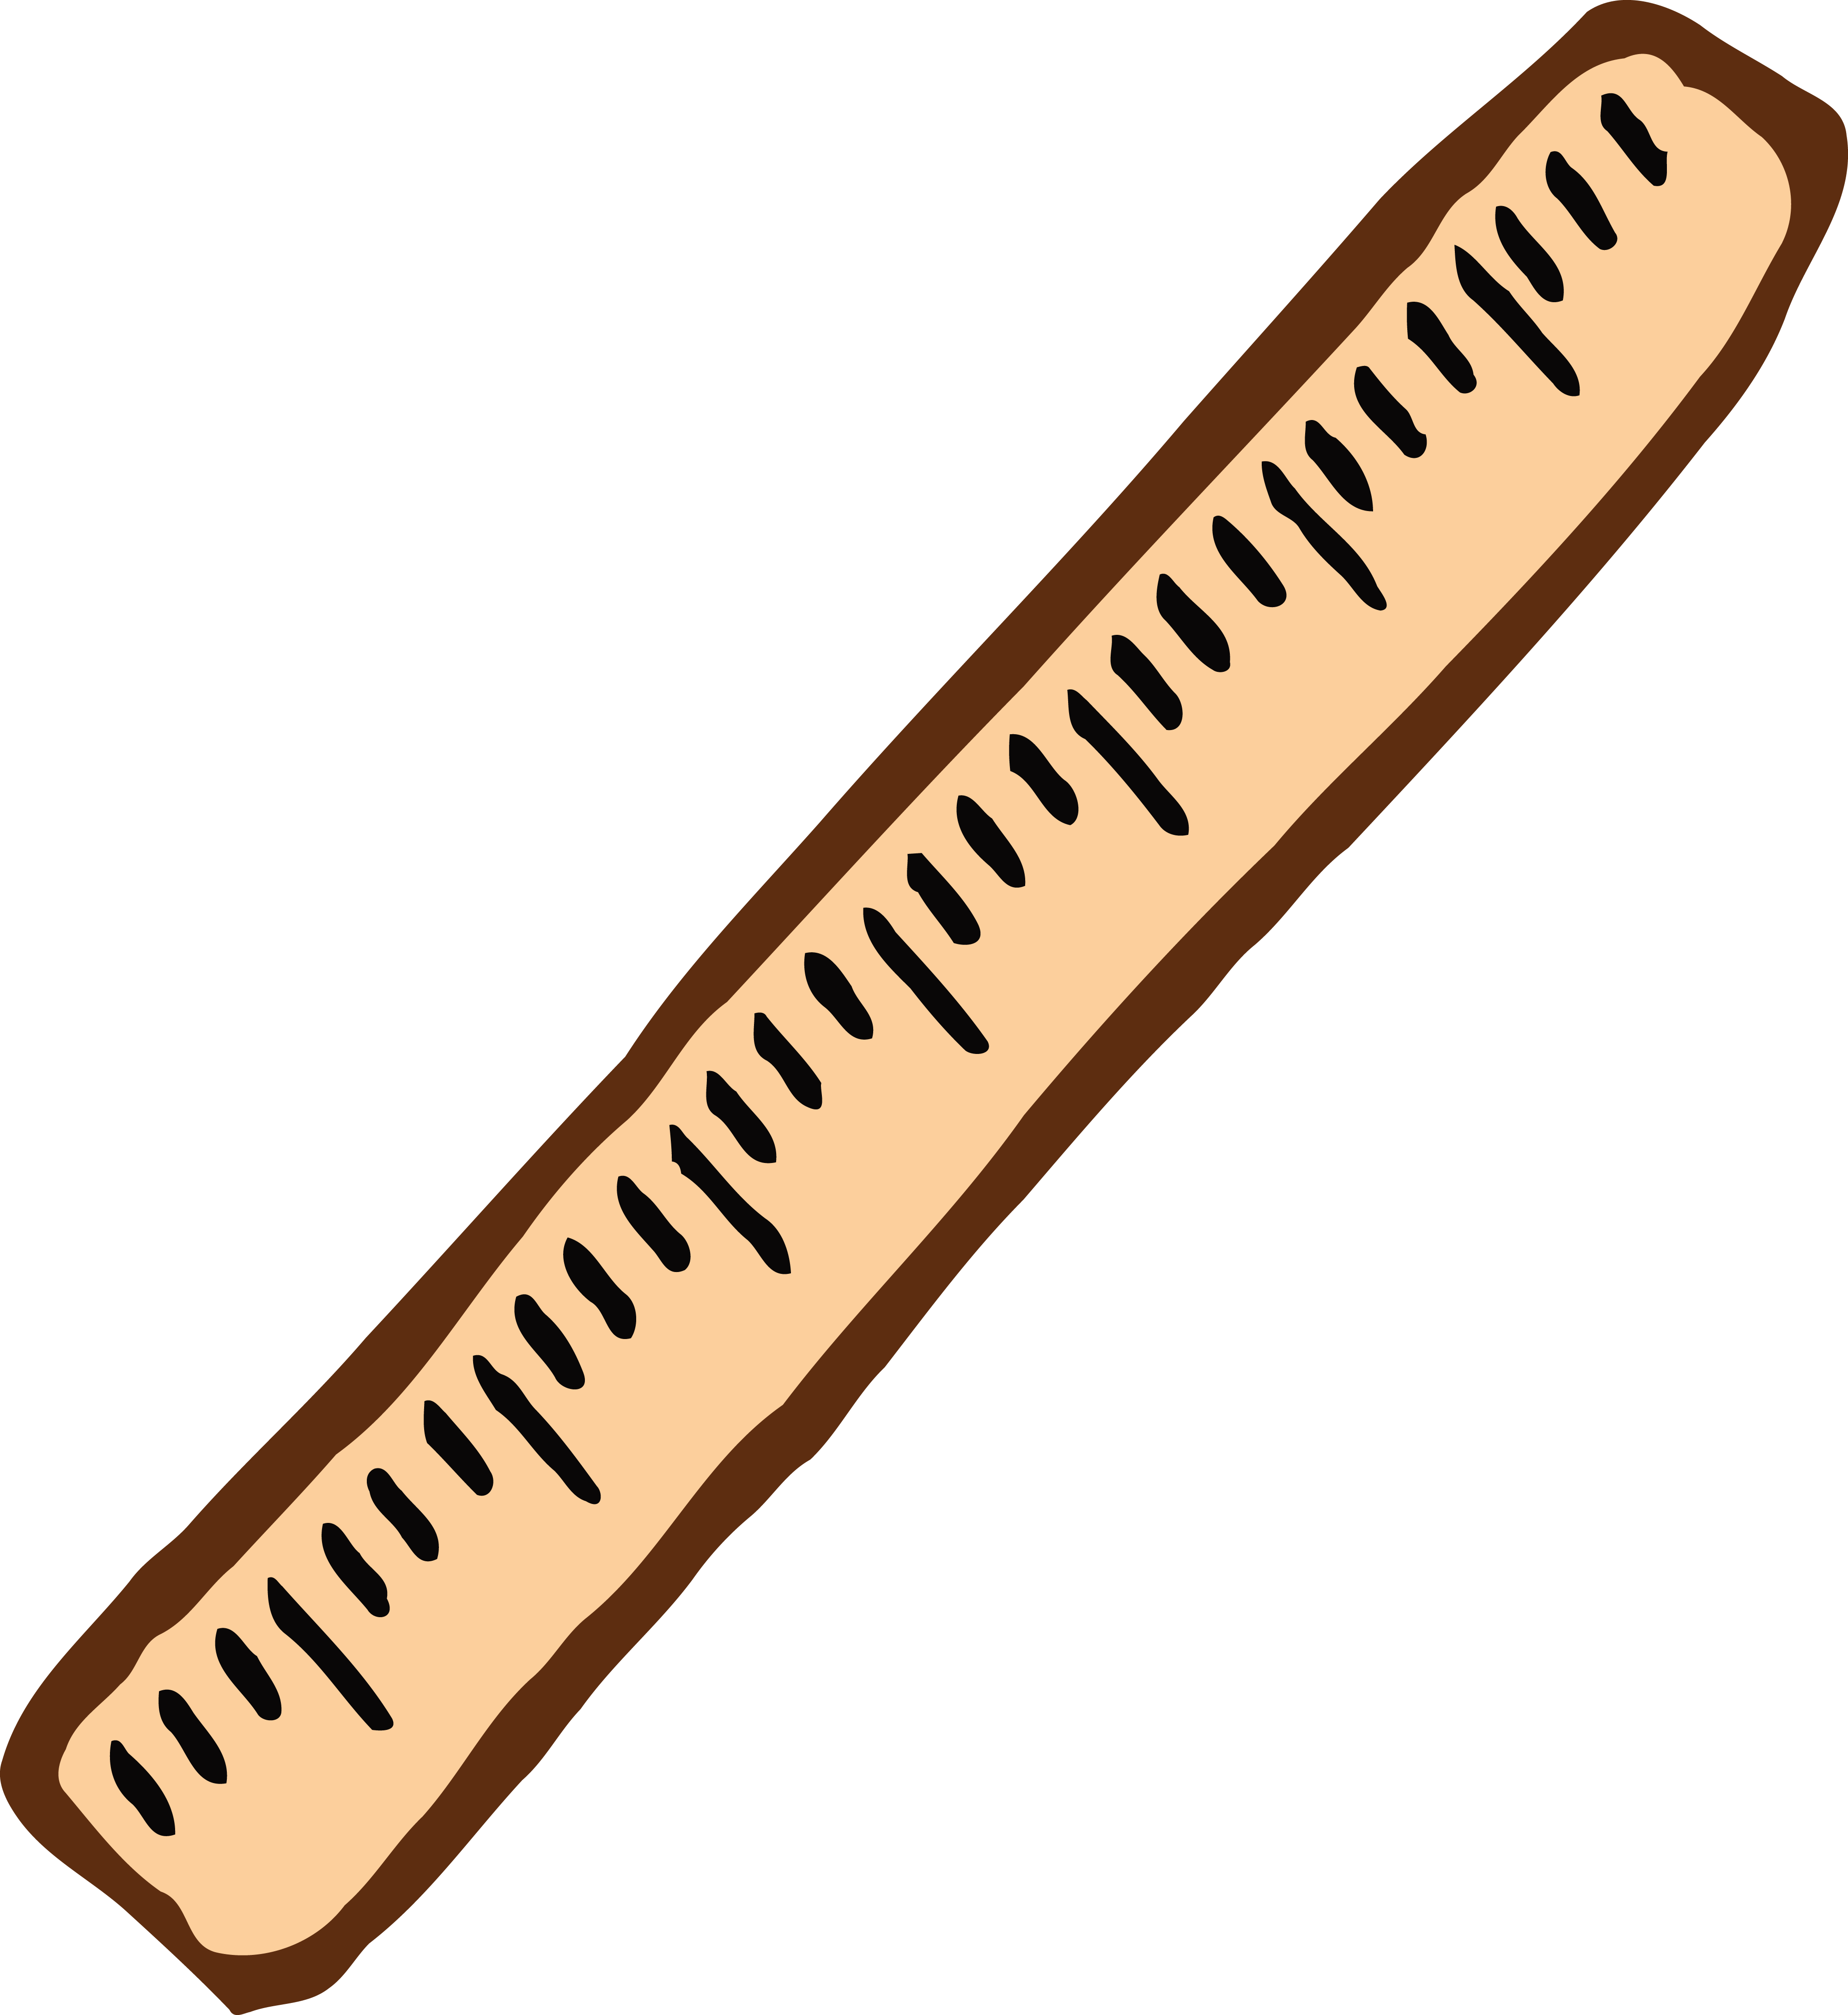 4000x4361 Free Clipart Of A Ruler